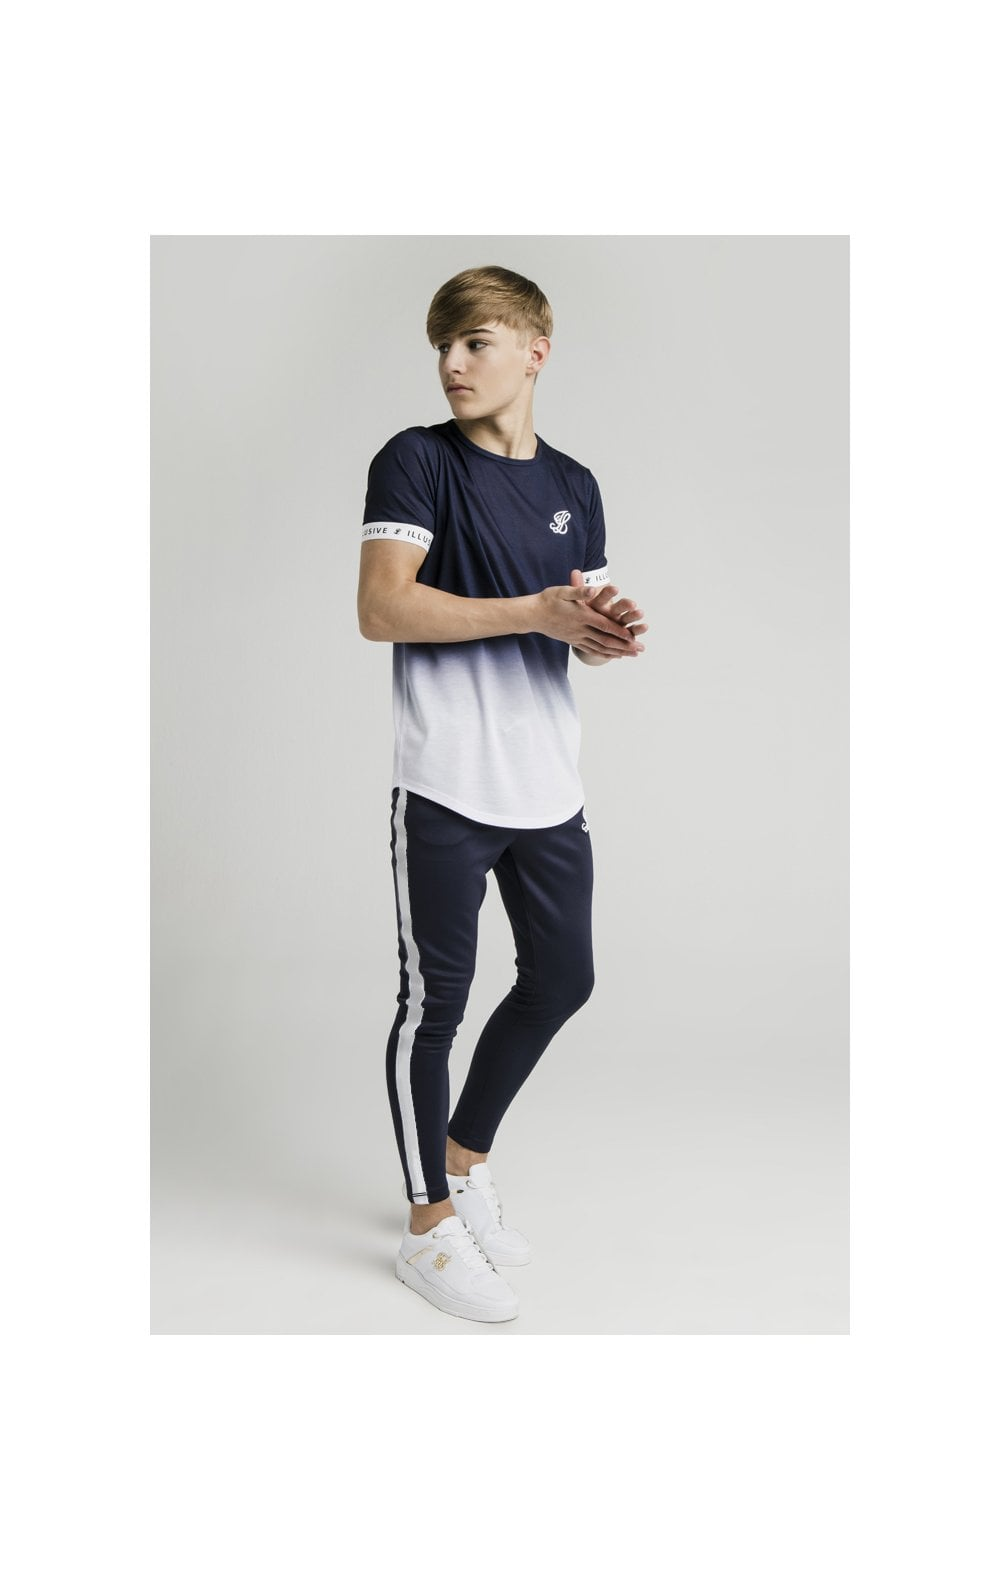 Load image into Gallery viewer, Illusive London Athlete Joggers - Navy & White (4)